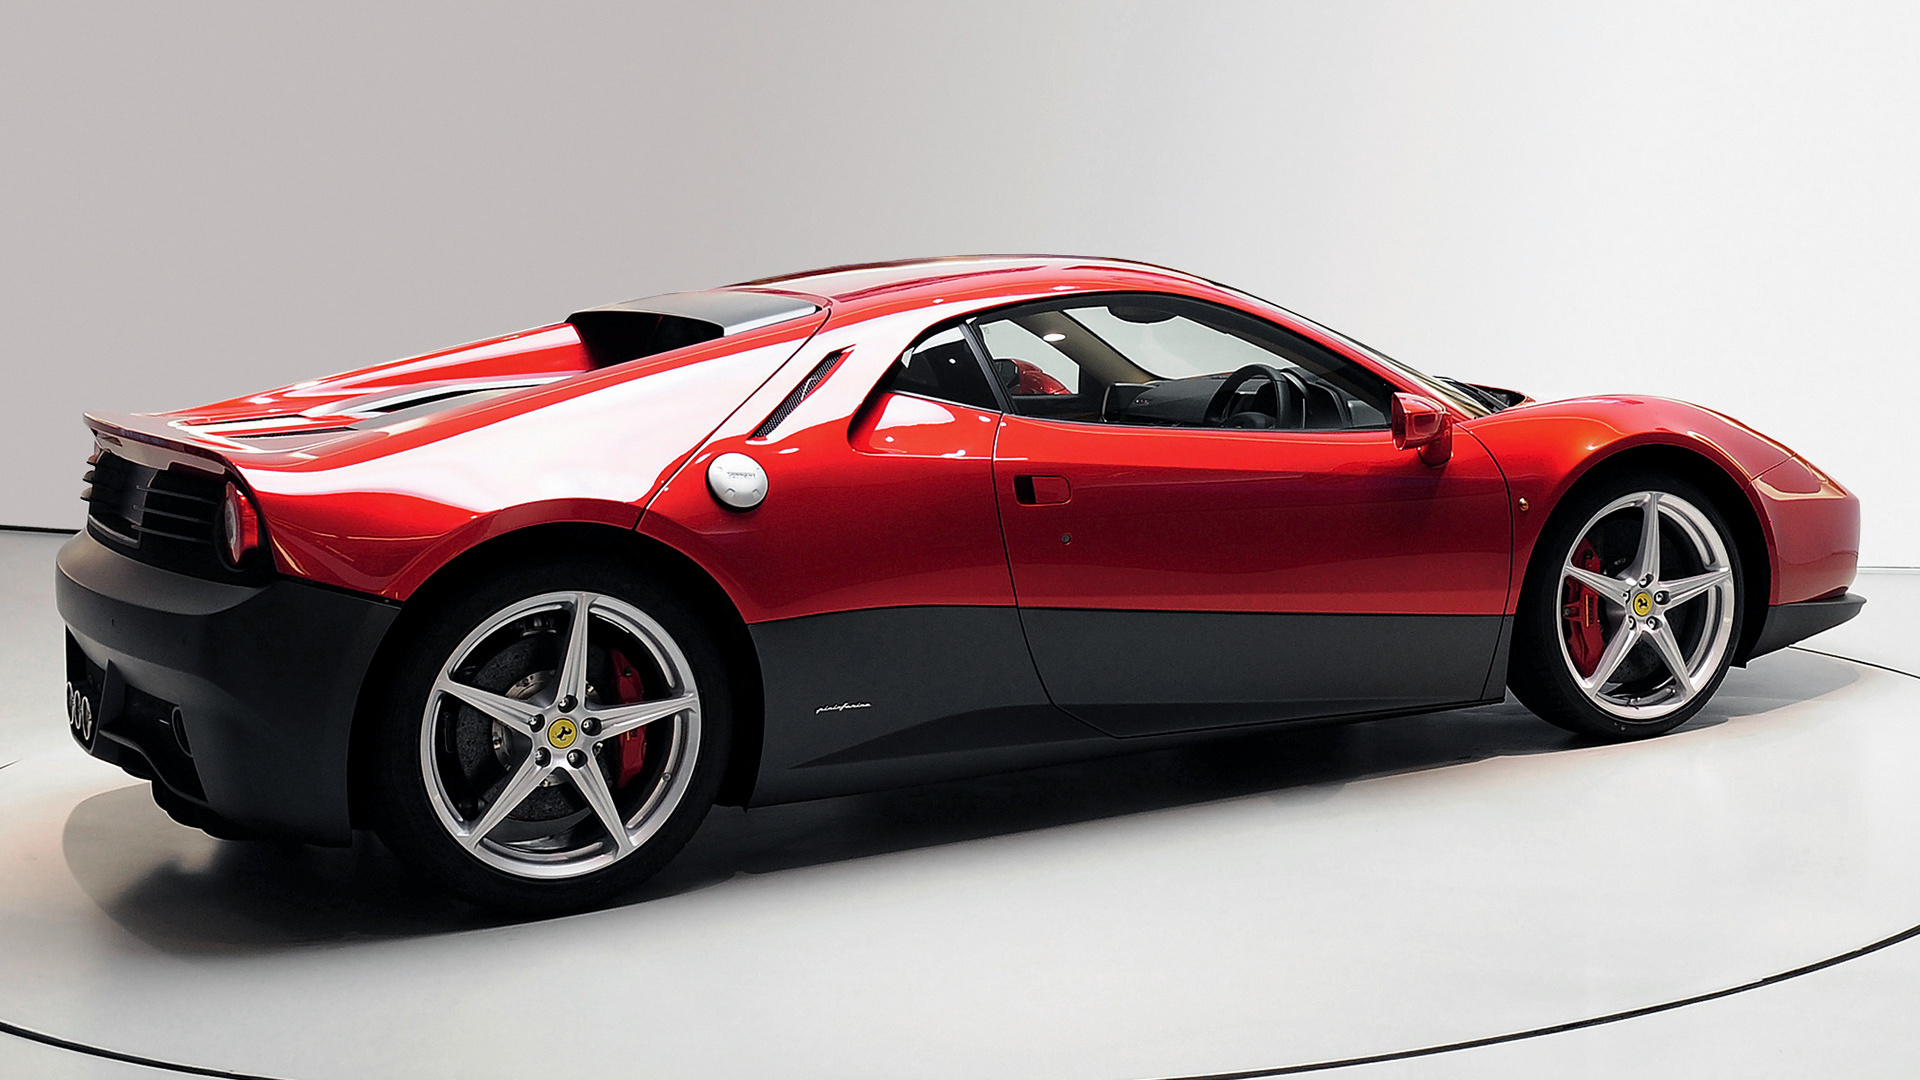 2012 Ferrari SP12 EC HD Wallpaper Background Image 1920x1080 1920x1080